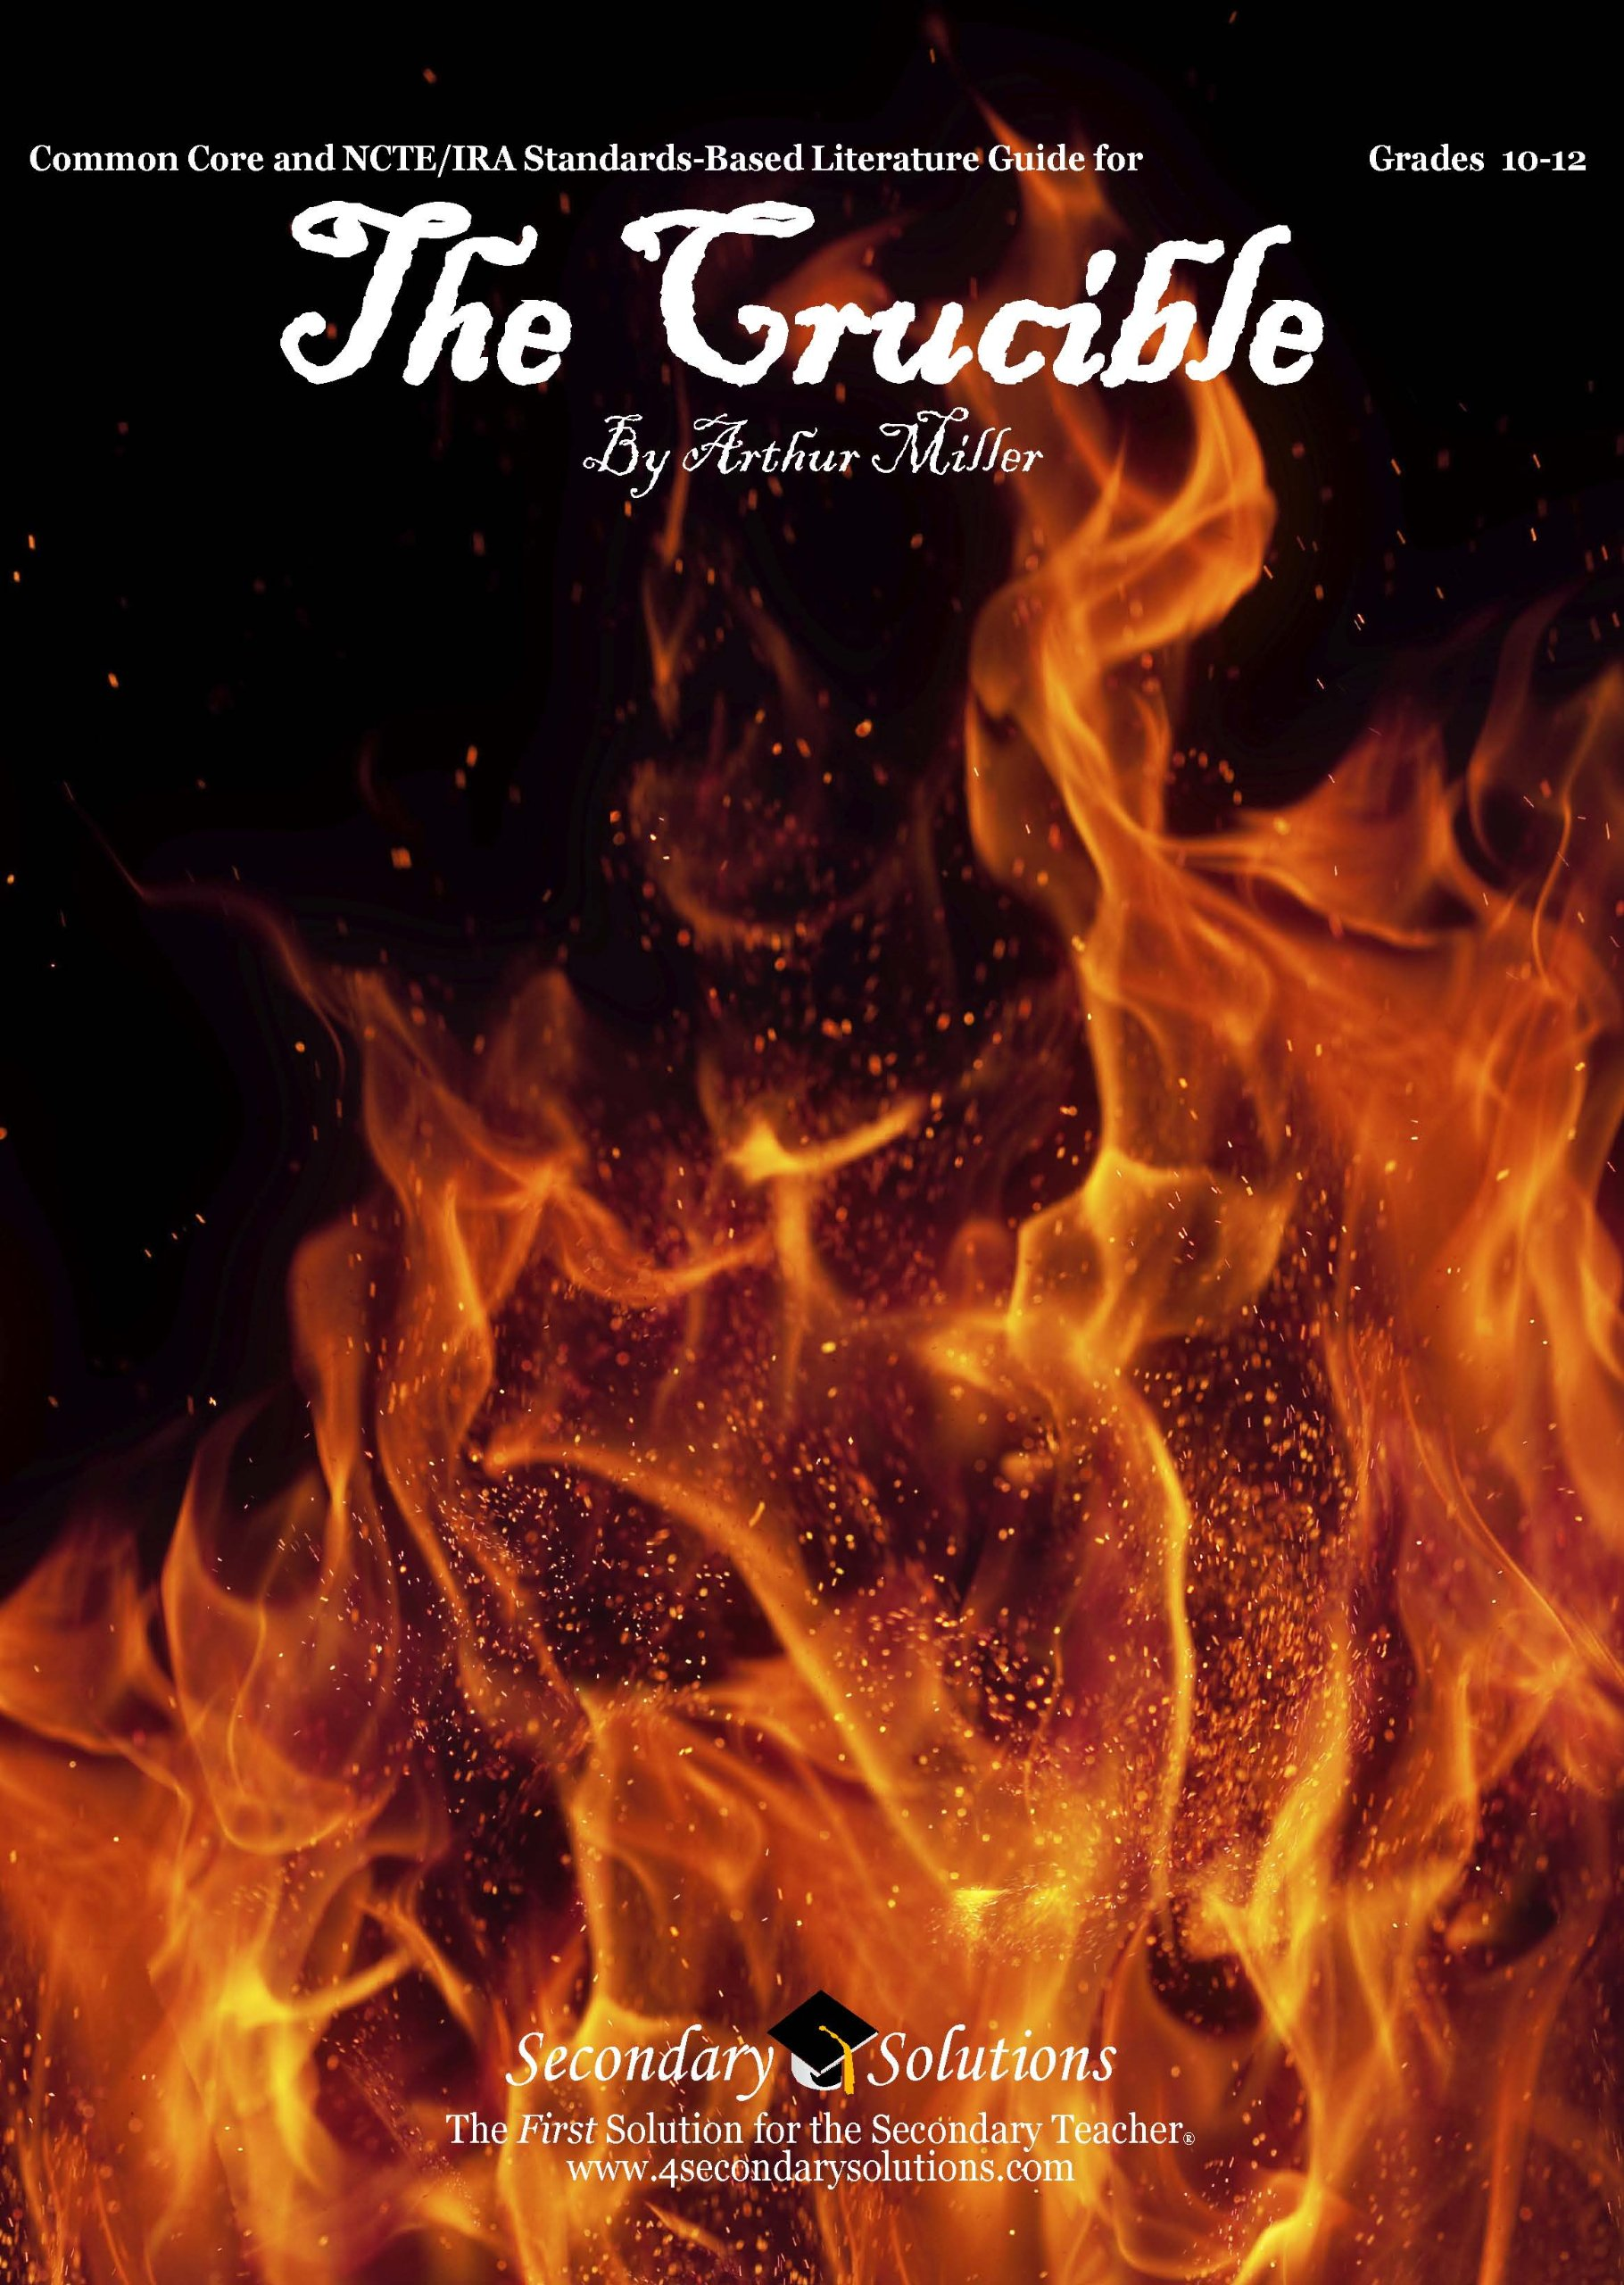 The Crucible Literature Guide (Common Core and NCTE/IRA Standards-Aligned Teaching Guide) ebook